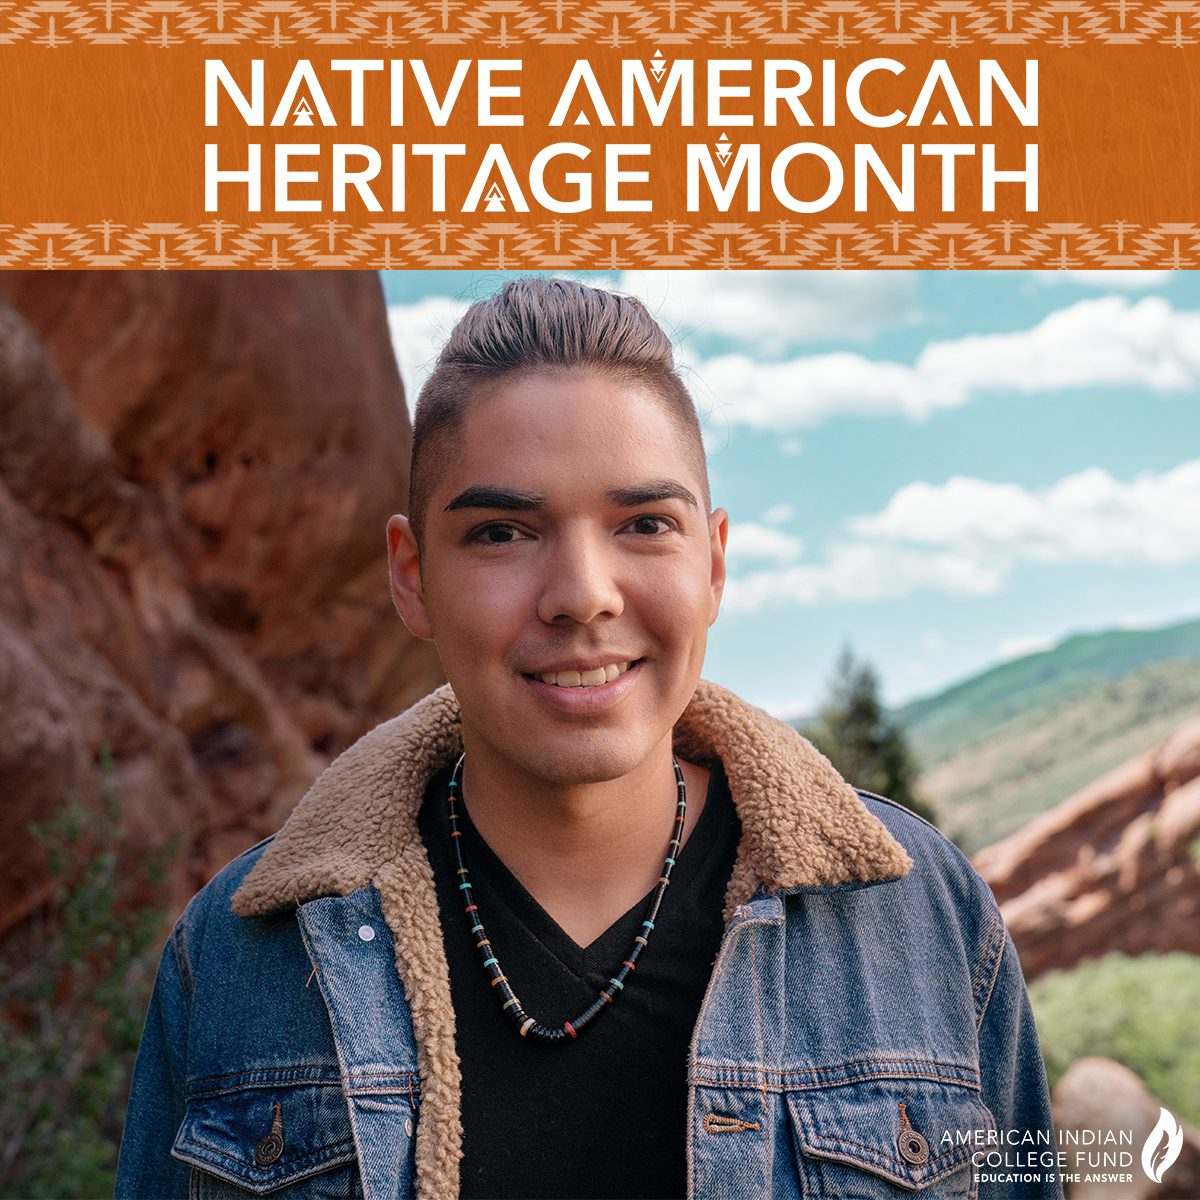 Native American Heritage Month - Share on Instagram 4